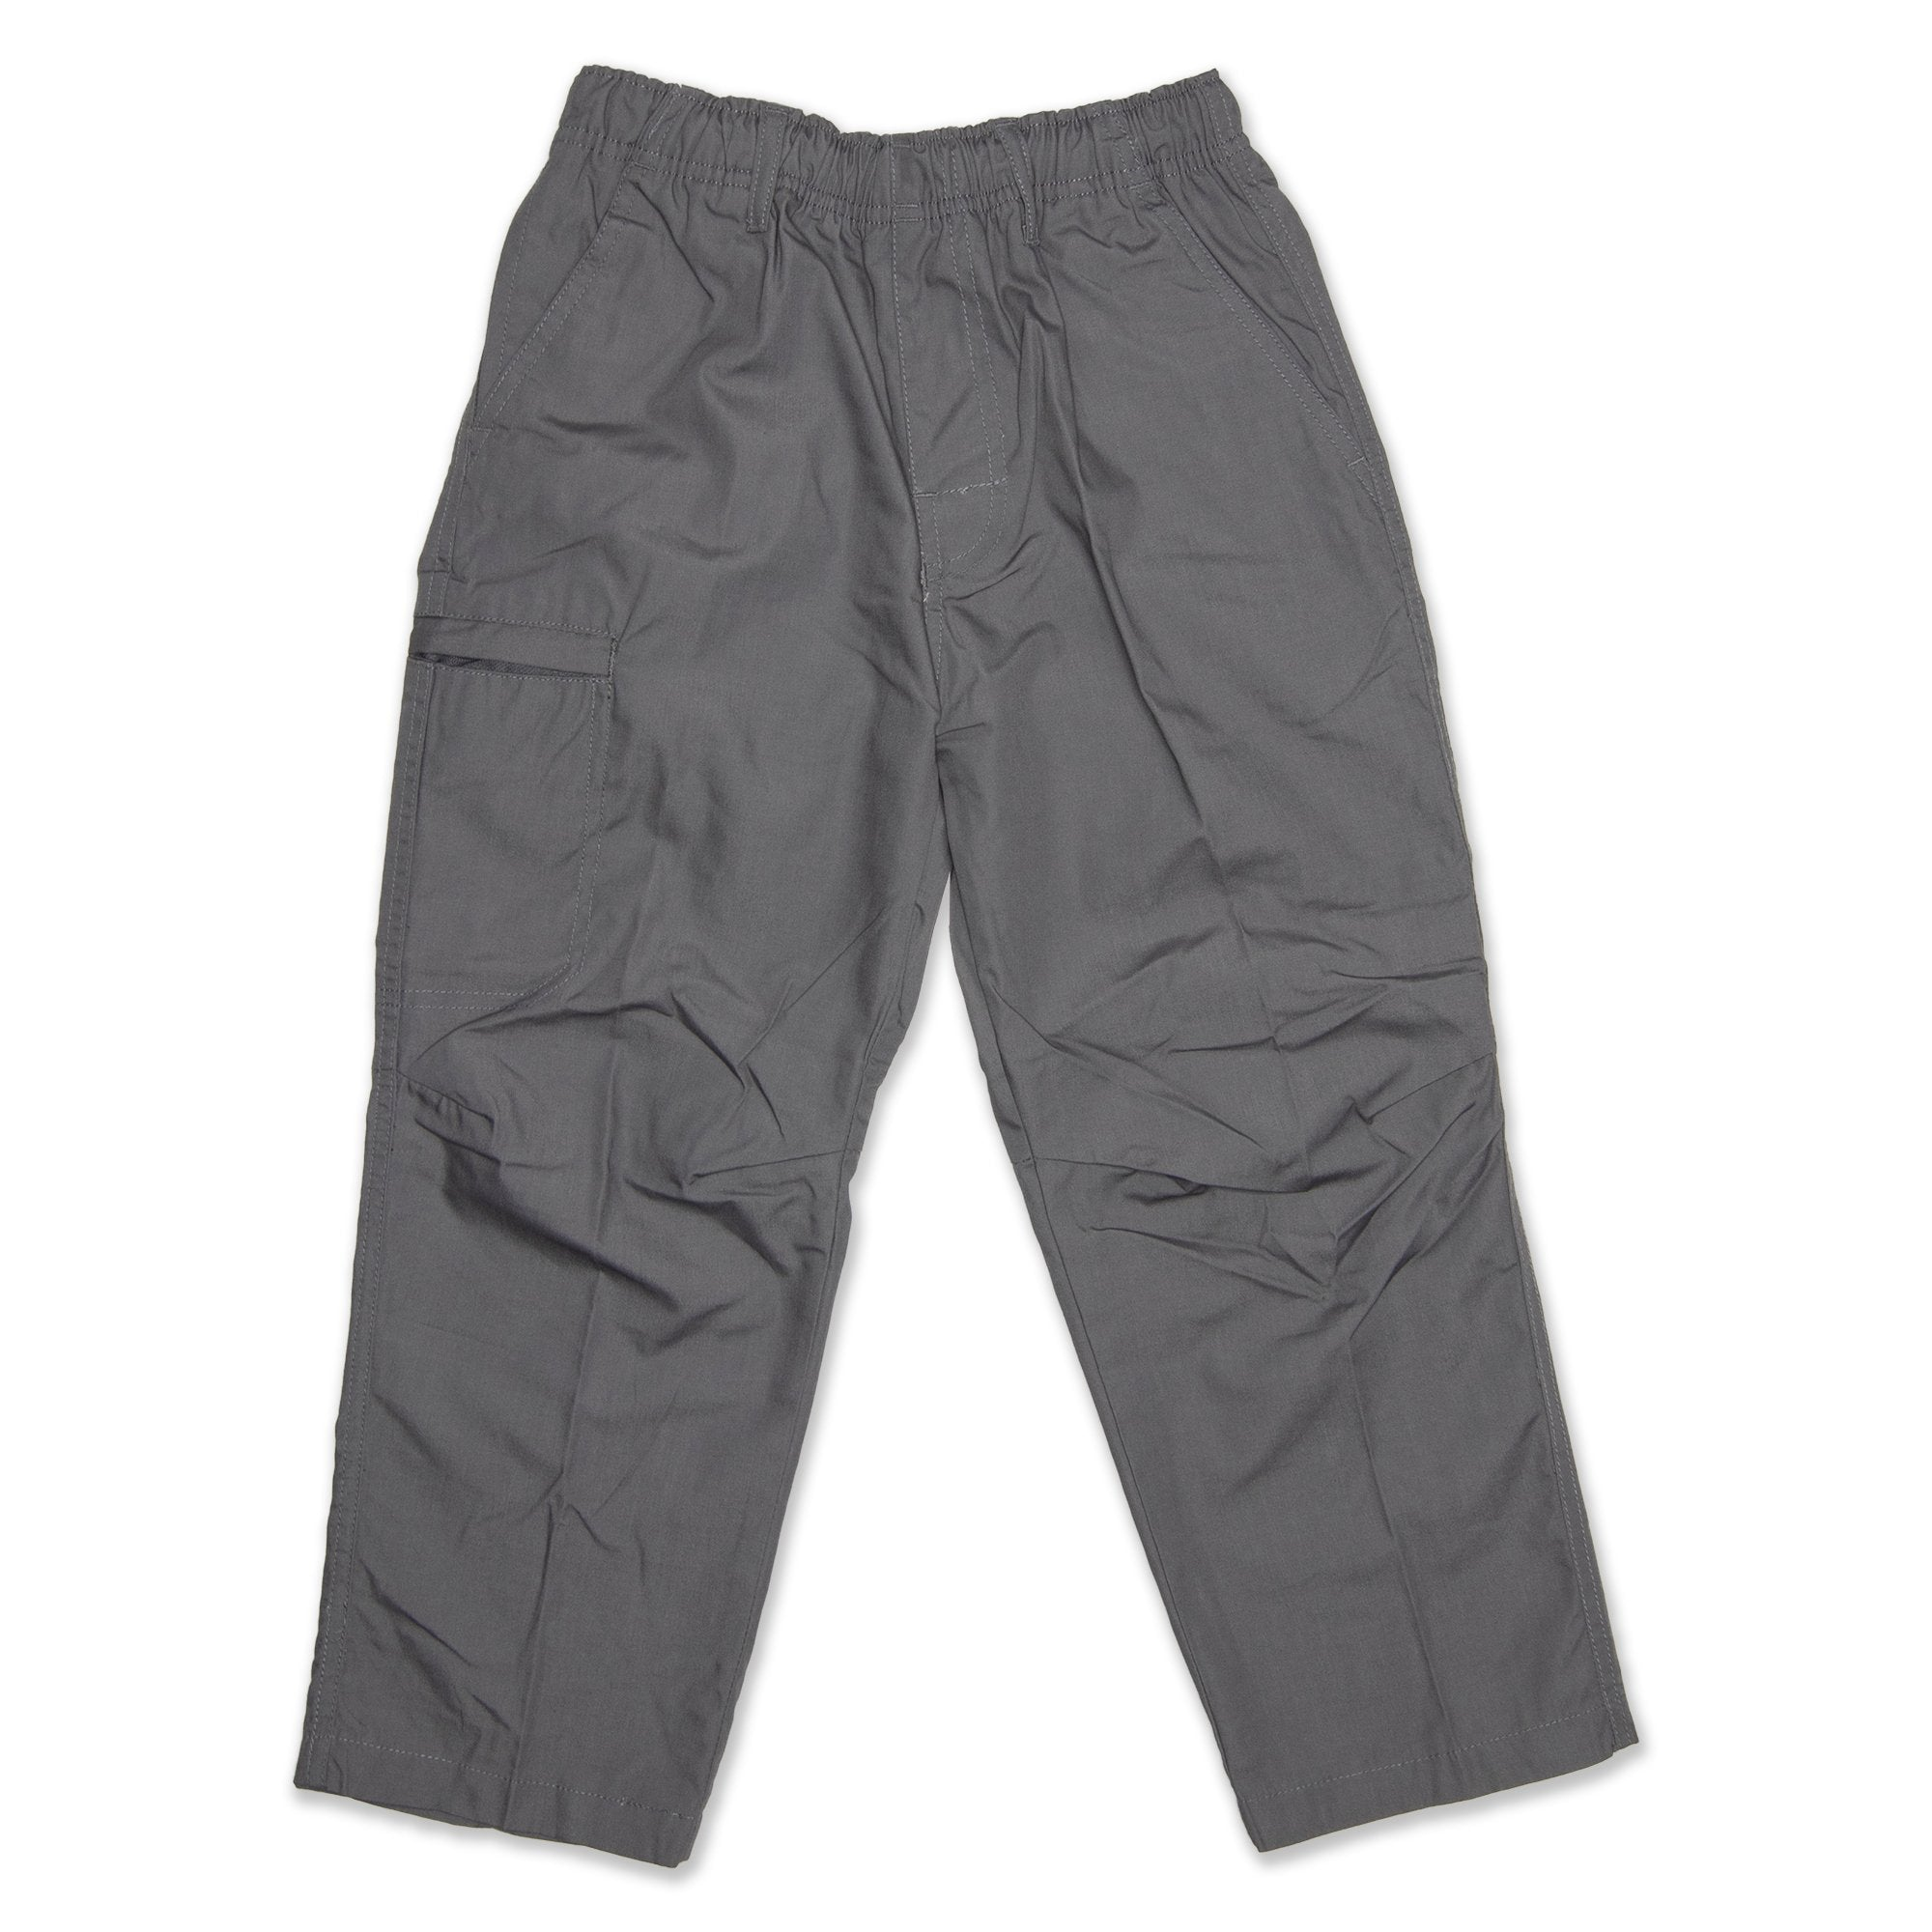 Stubbies School Wear Canvas Pant - Grey Workwear Stubbies